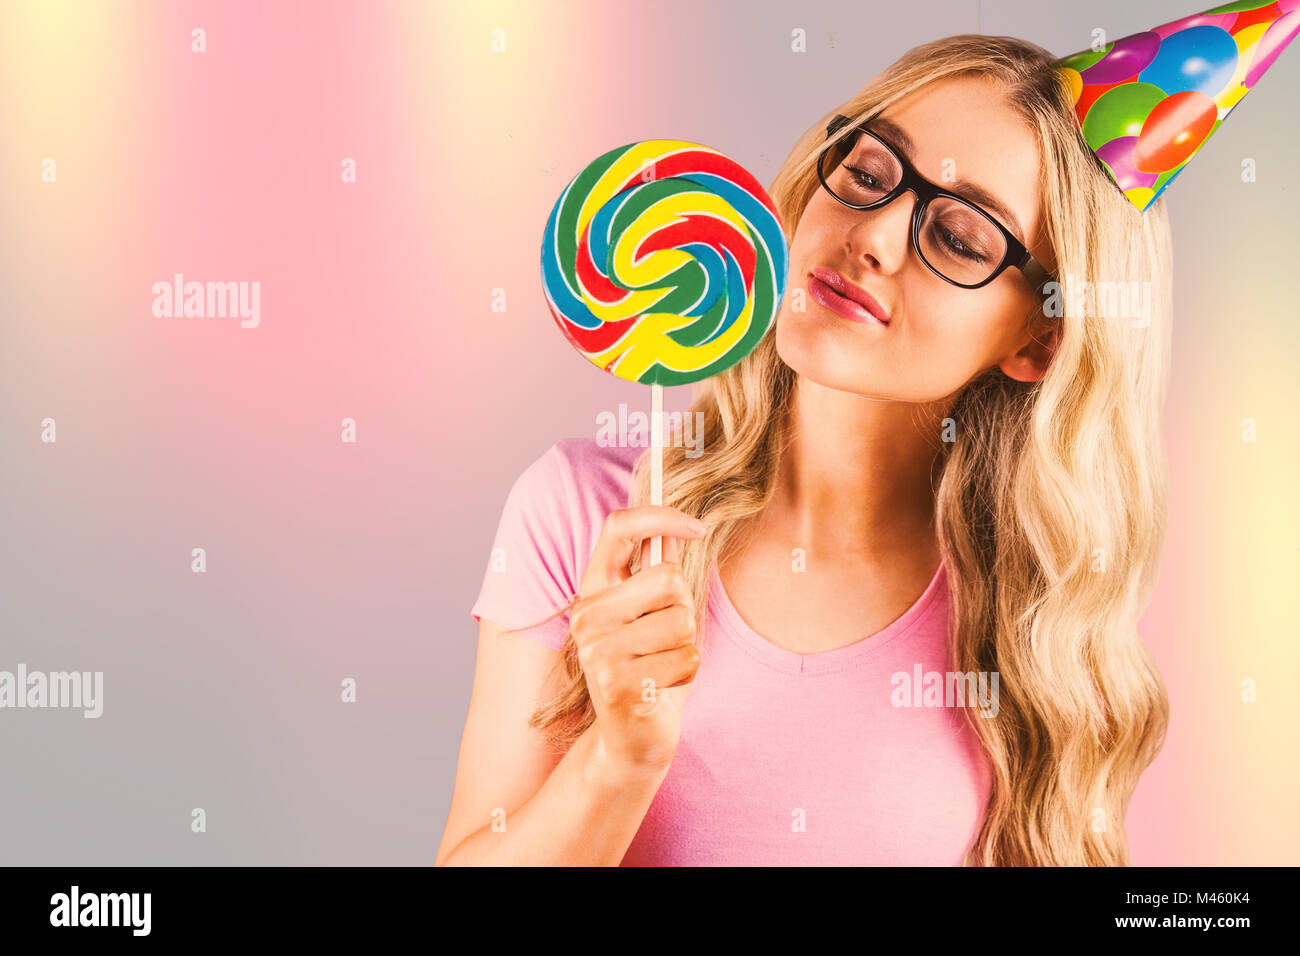 Composite image of a beautiful hipster holding a giant lollipop - Stock Image